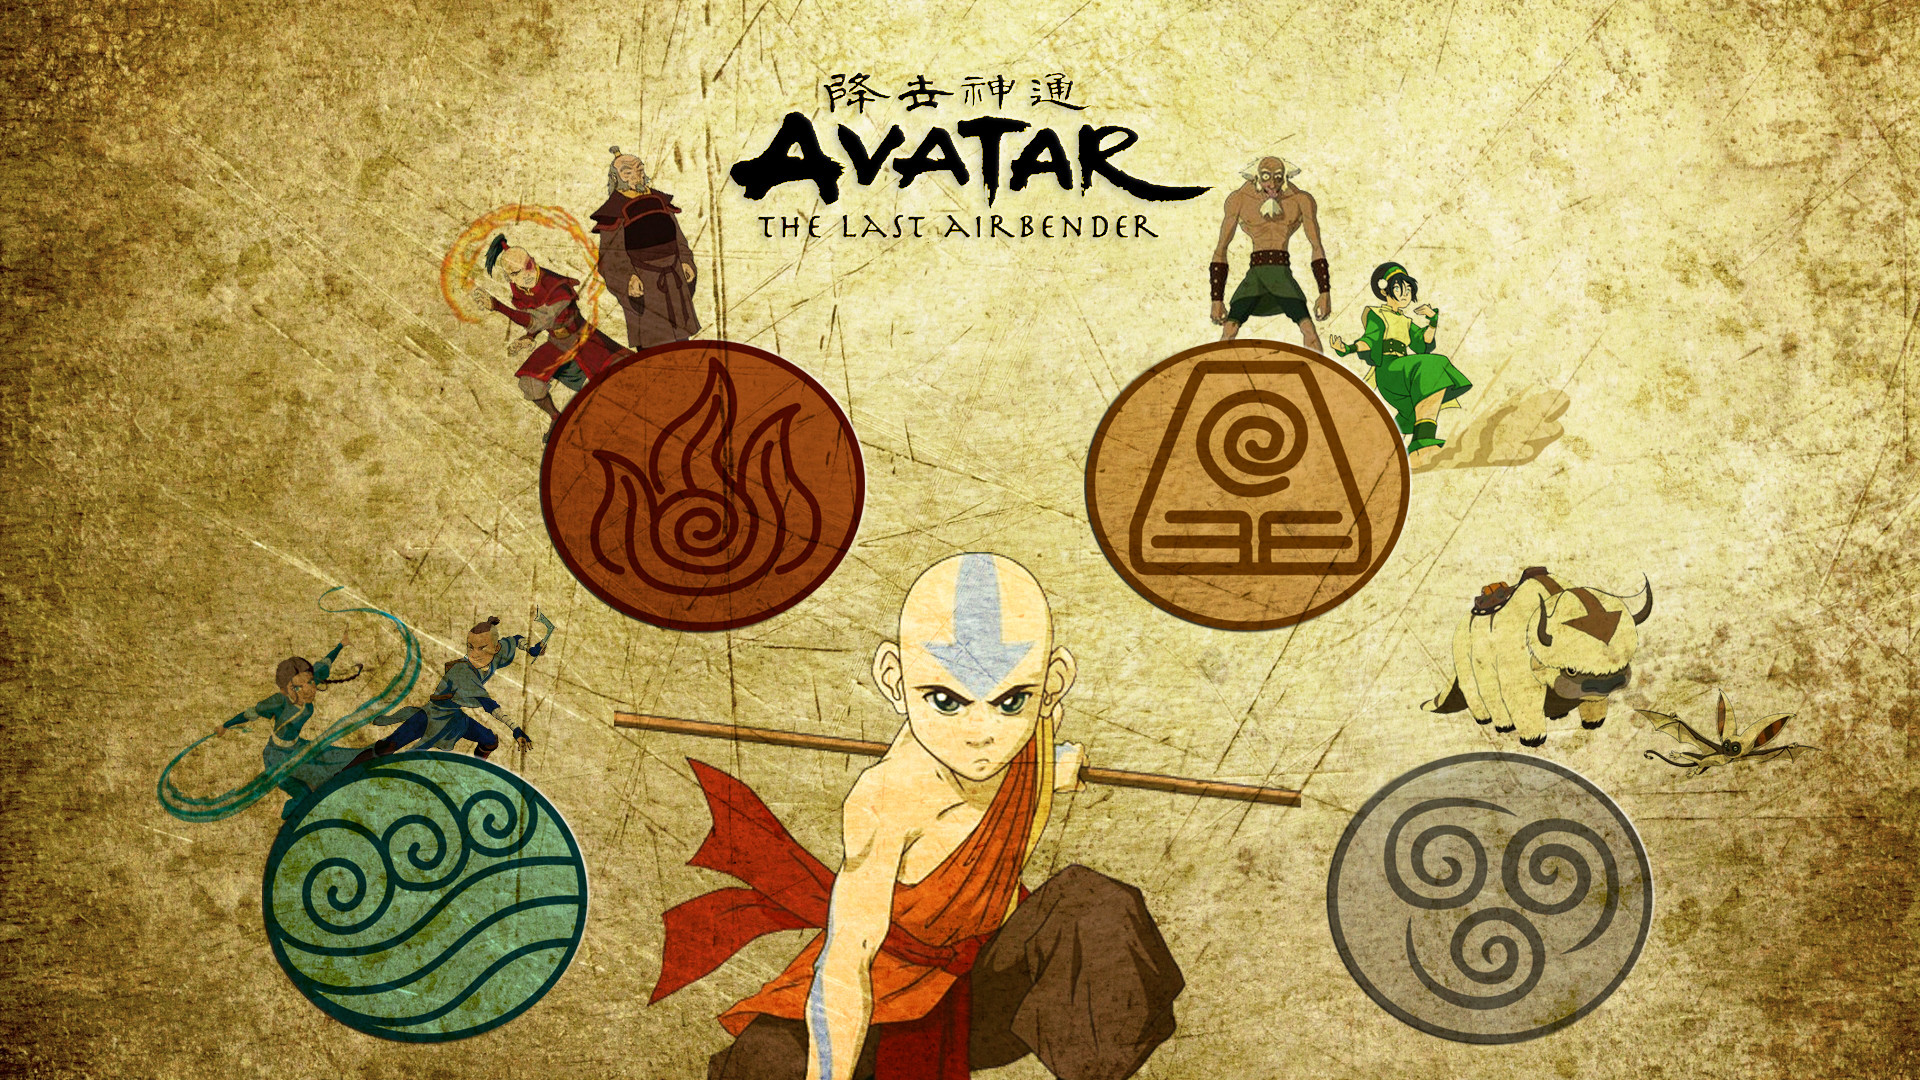 1920x1080 Avatar The Last Airbender Wallpaper Aang High Definition For HD Desktop Px KB